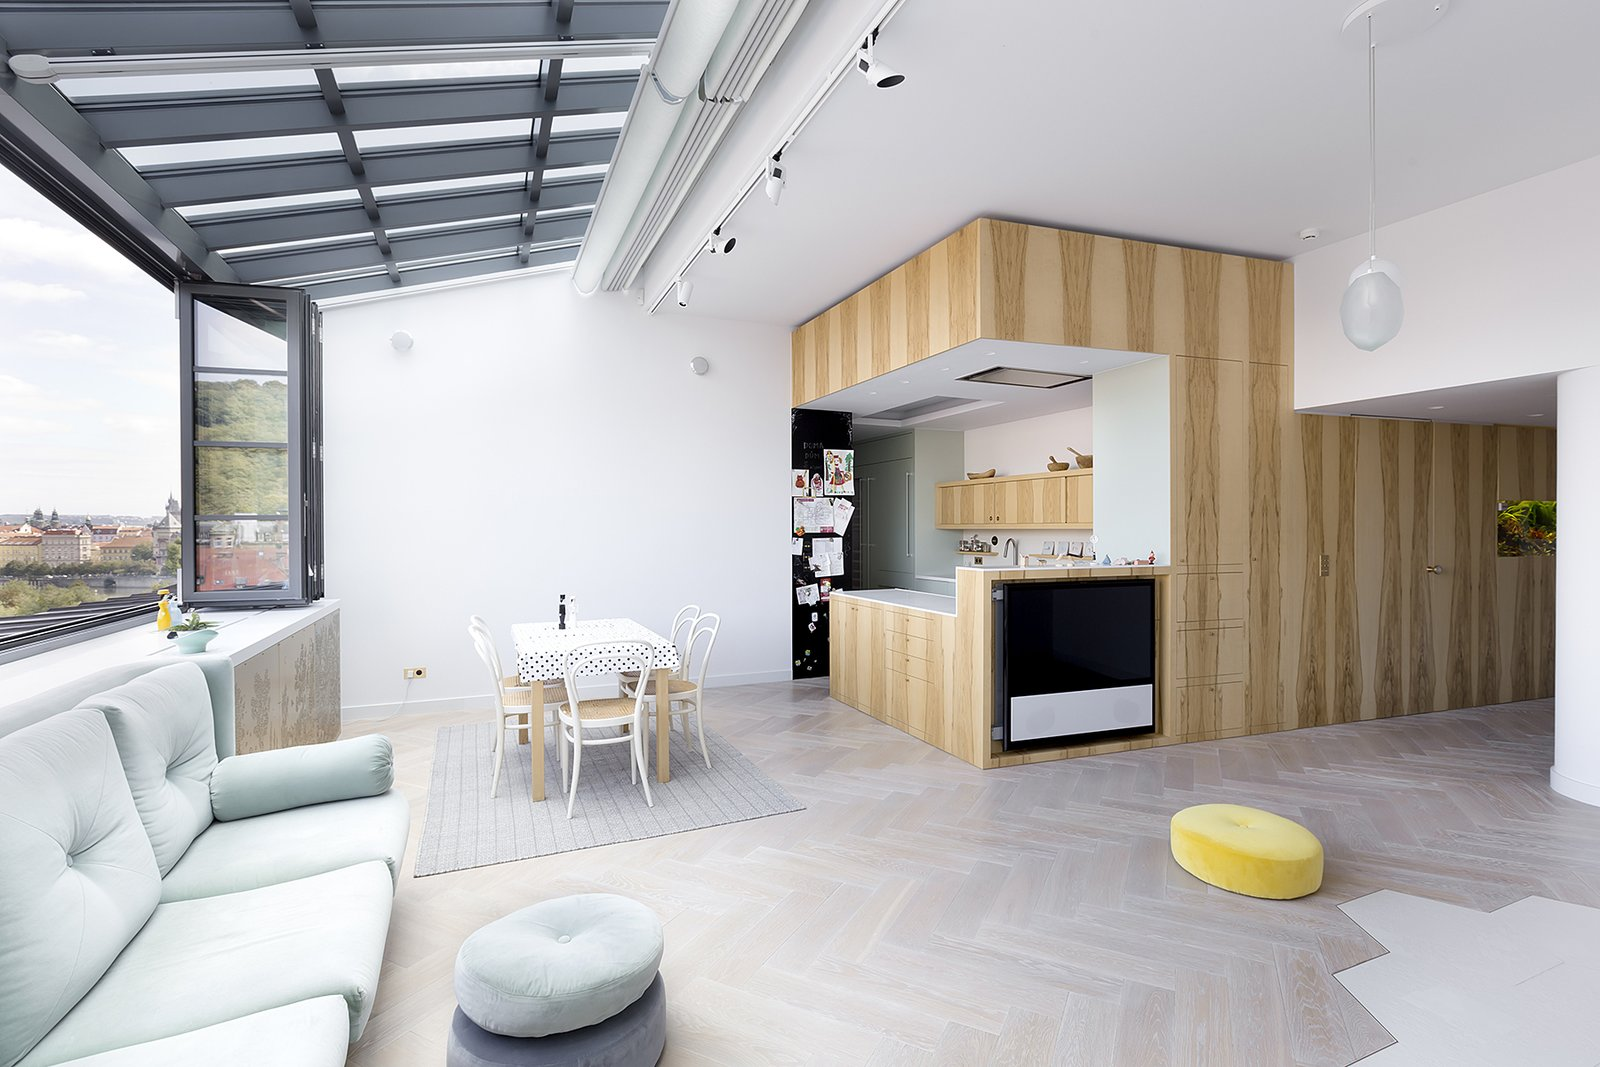 Living Room, Sofa, Light Hardwood Floor, Pendant Lighting, Track Lighting, Wall Lighting, Rug Floor, Chair, Table, and Ottomans  Photo 3 of 18 in A Dreamy Loft in Prague With Castle Views and an Onyx Moon